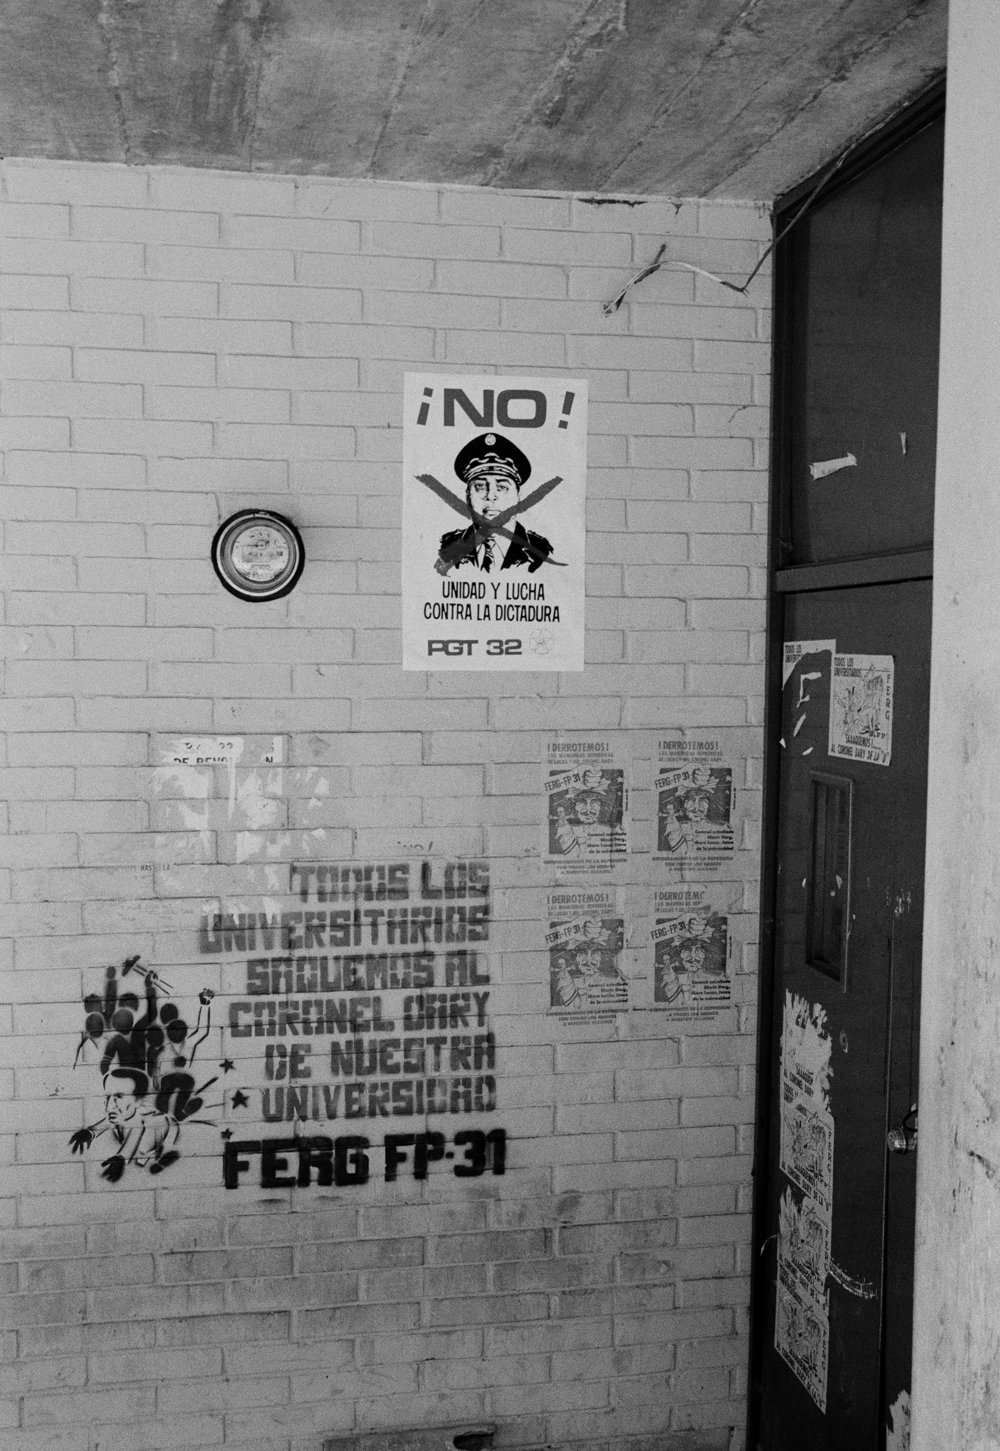 Graffiti in support of leftist insurgent groups and anti-government posters collect on a wall March 1982 on the San Carlos University campus in Guatemala City, Guatemala. San Carlos University is the biggest and oldest university in Guatemala with approximately 153,000 students.